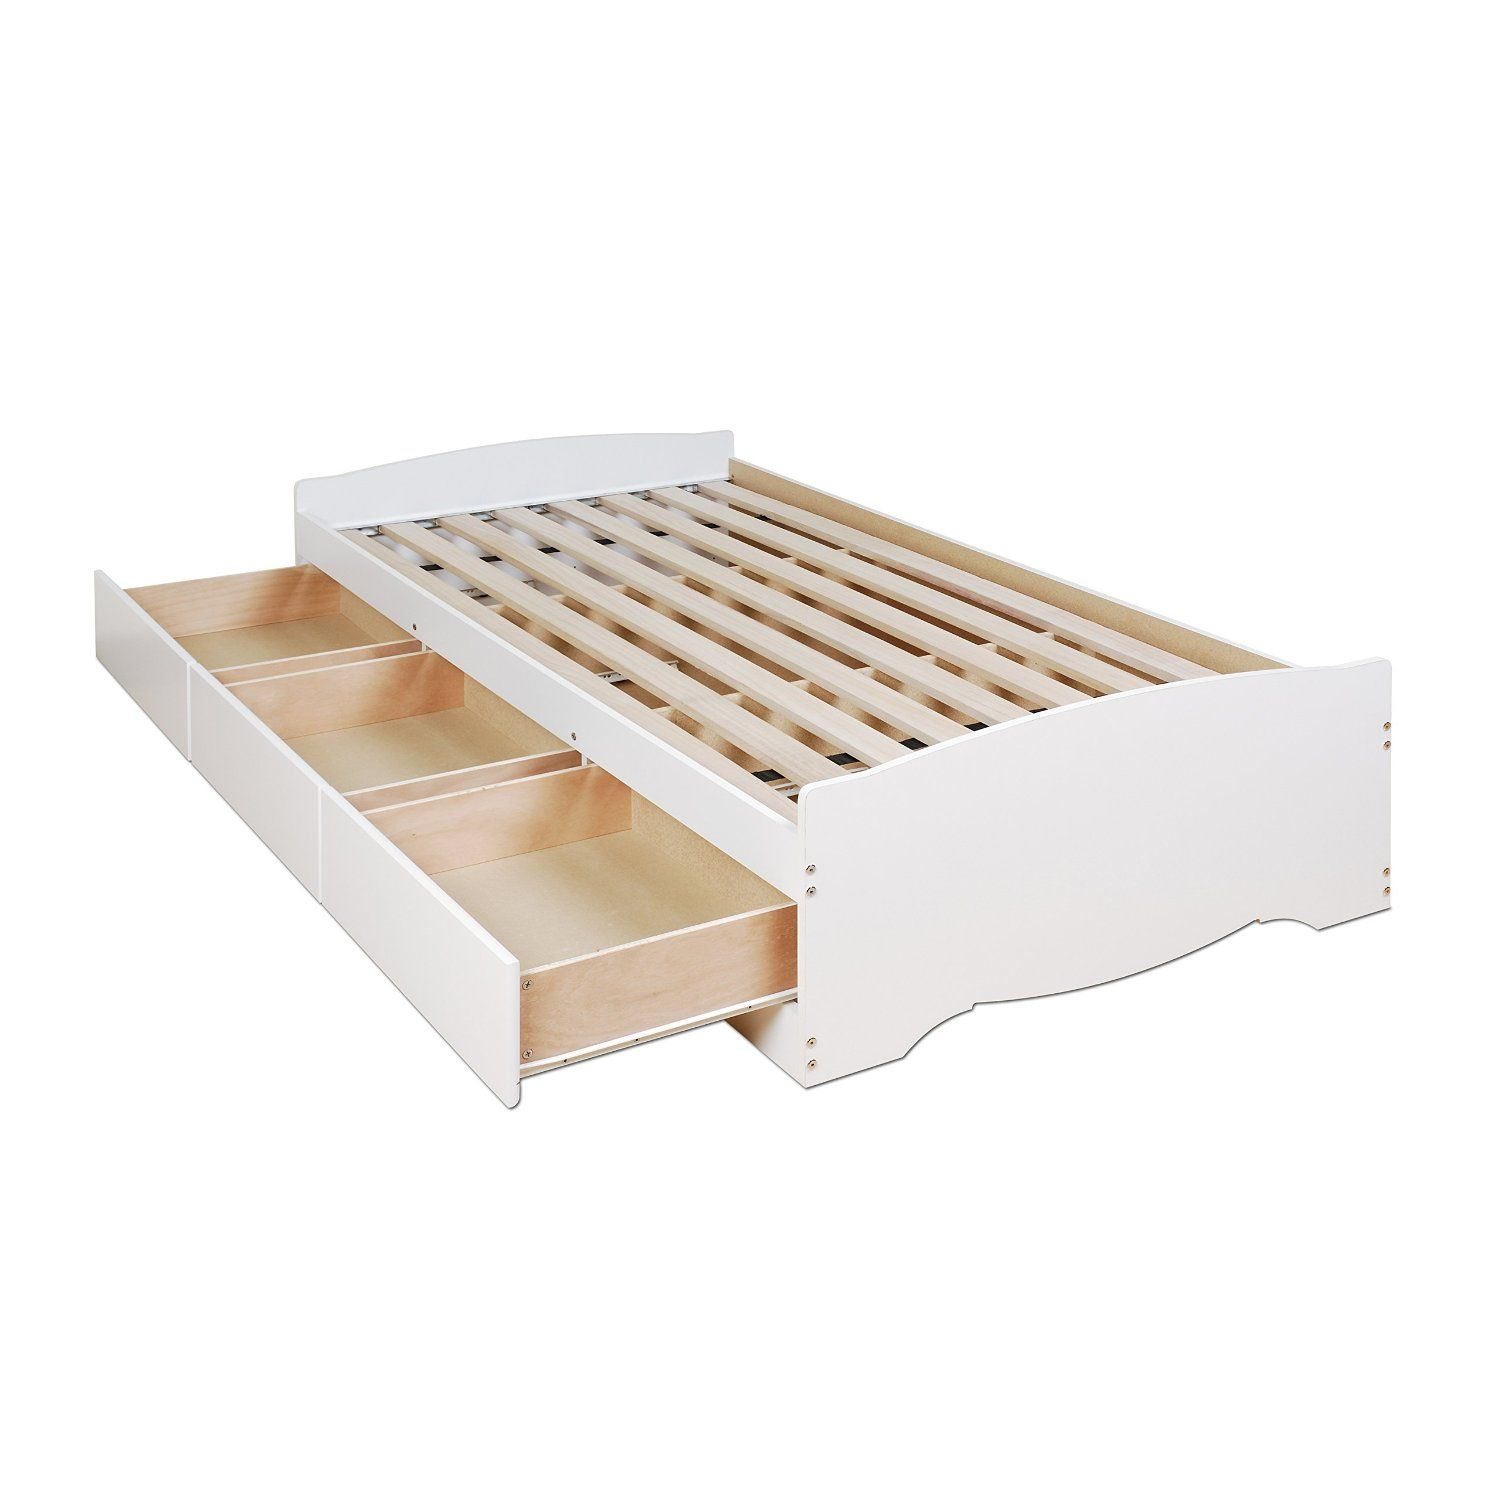 Amazon.com: White Twin Mate's Platform Storage Bed with 3 Drawers: Home & Kitchen